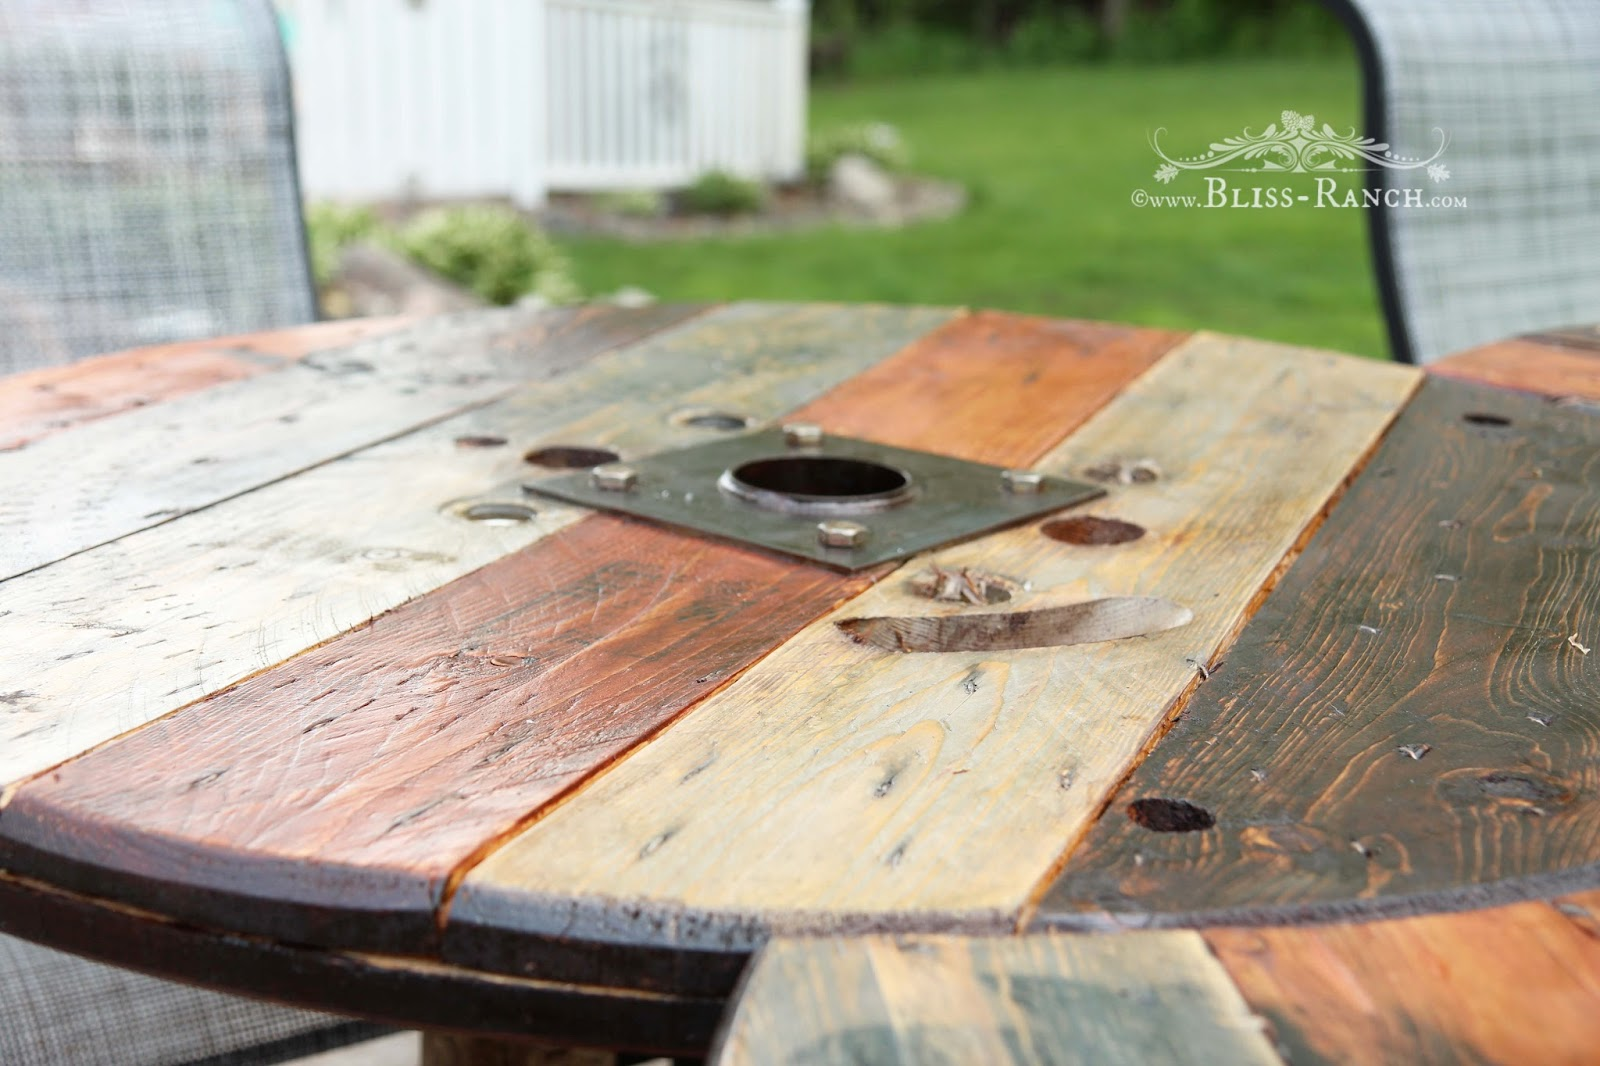 Bliss-Ranch Wood Spool Table